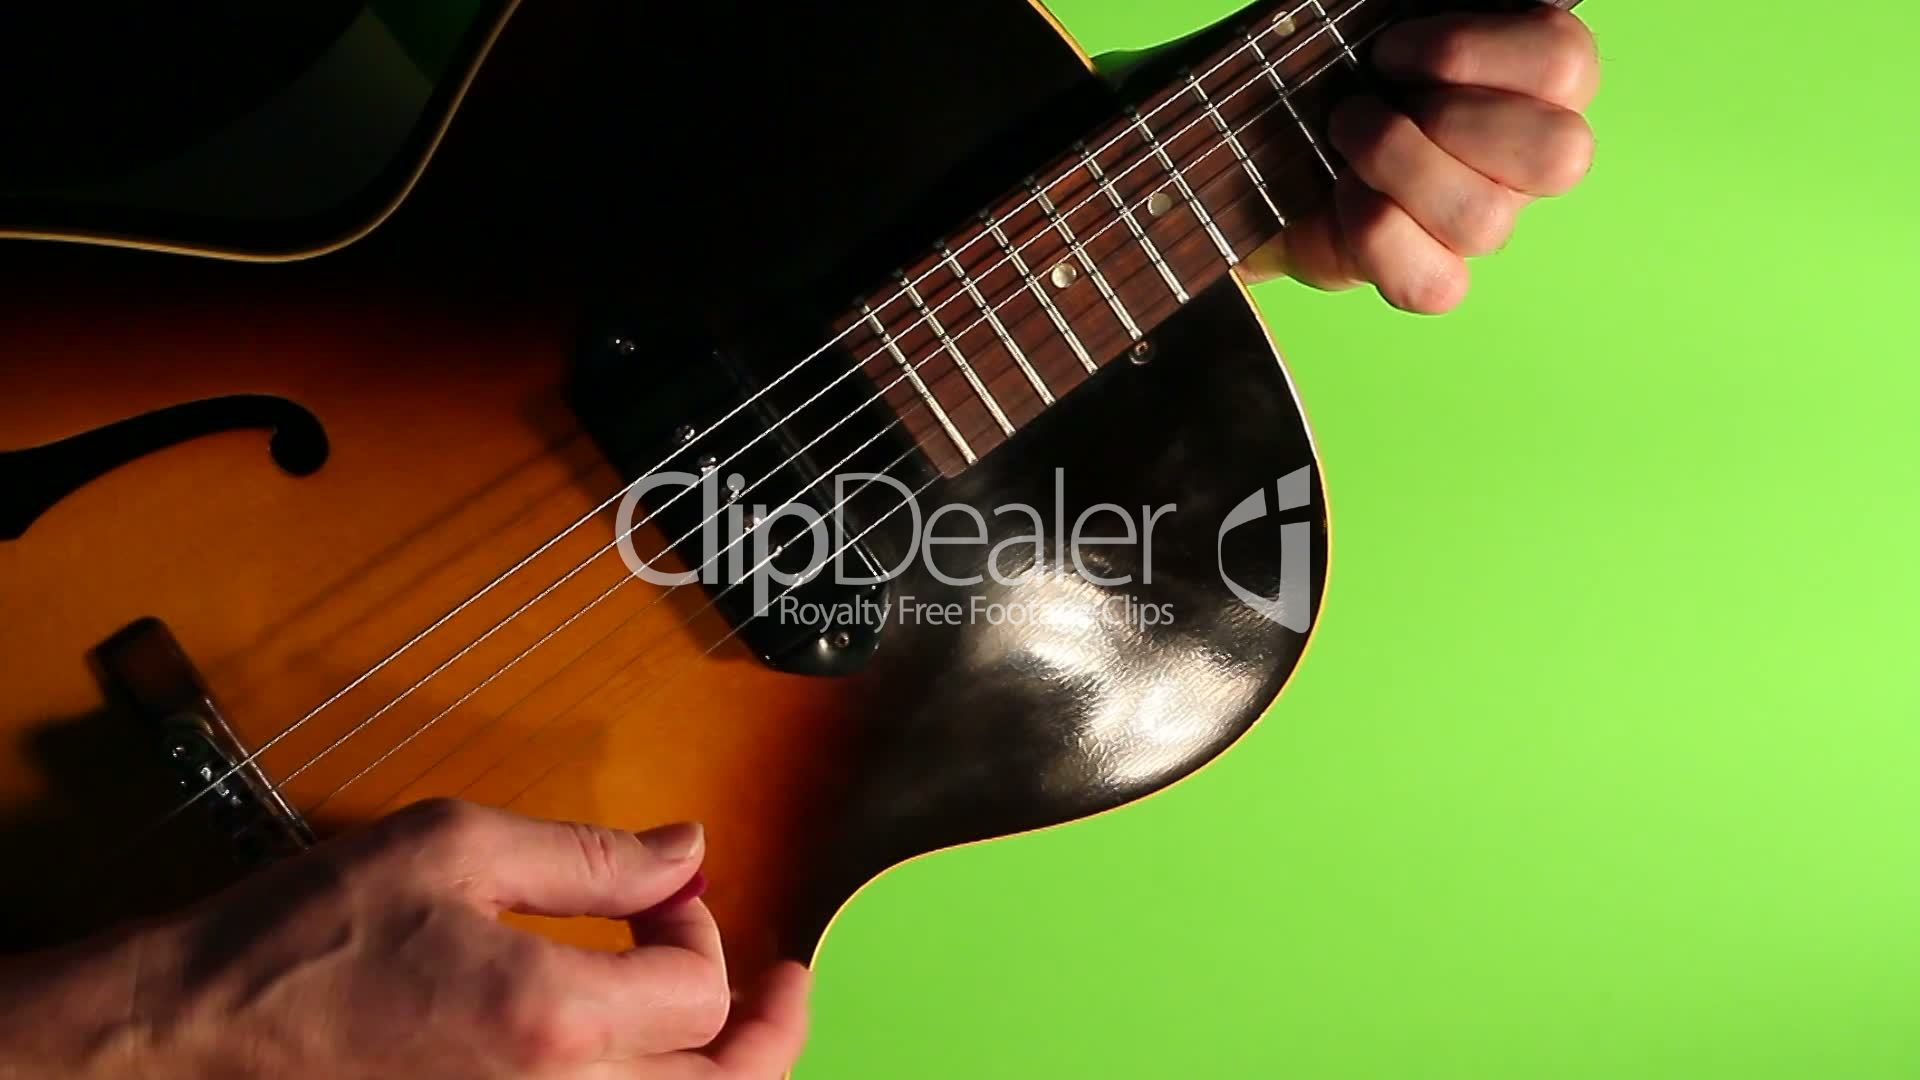 Blues jazz guitar green screen: Royalty-free video and stock